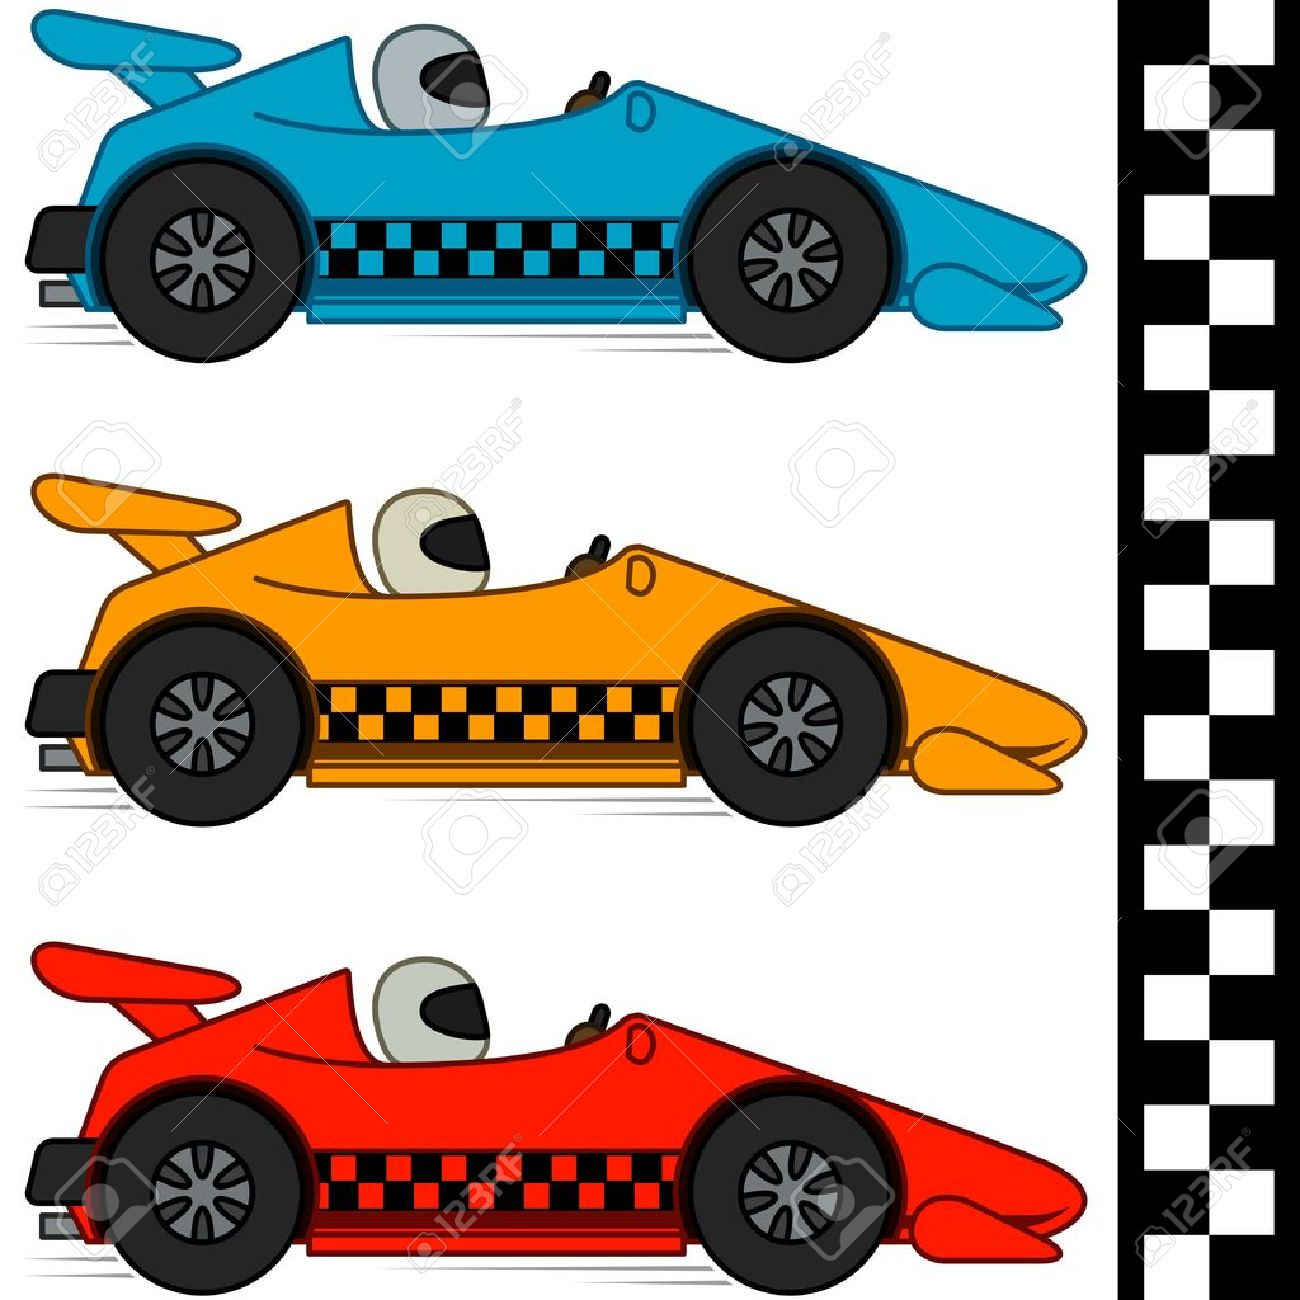 racing cars and finishing line isolated no gradients royalty free rh 123rf com race car vector package race car vector clip art